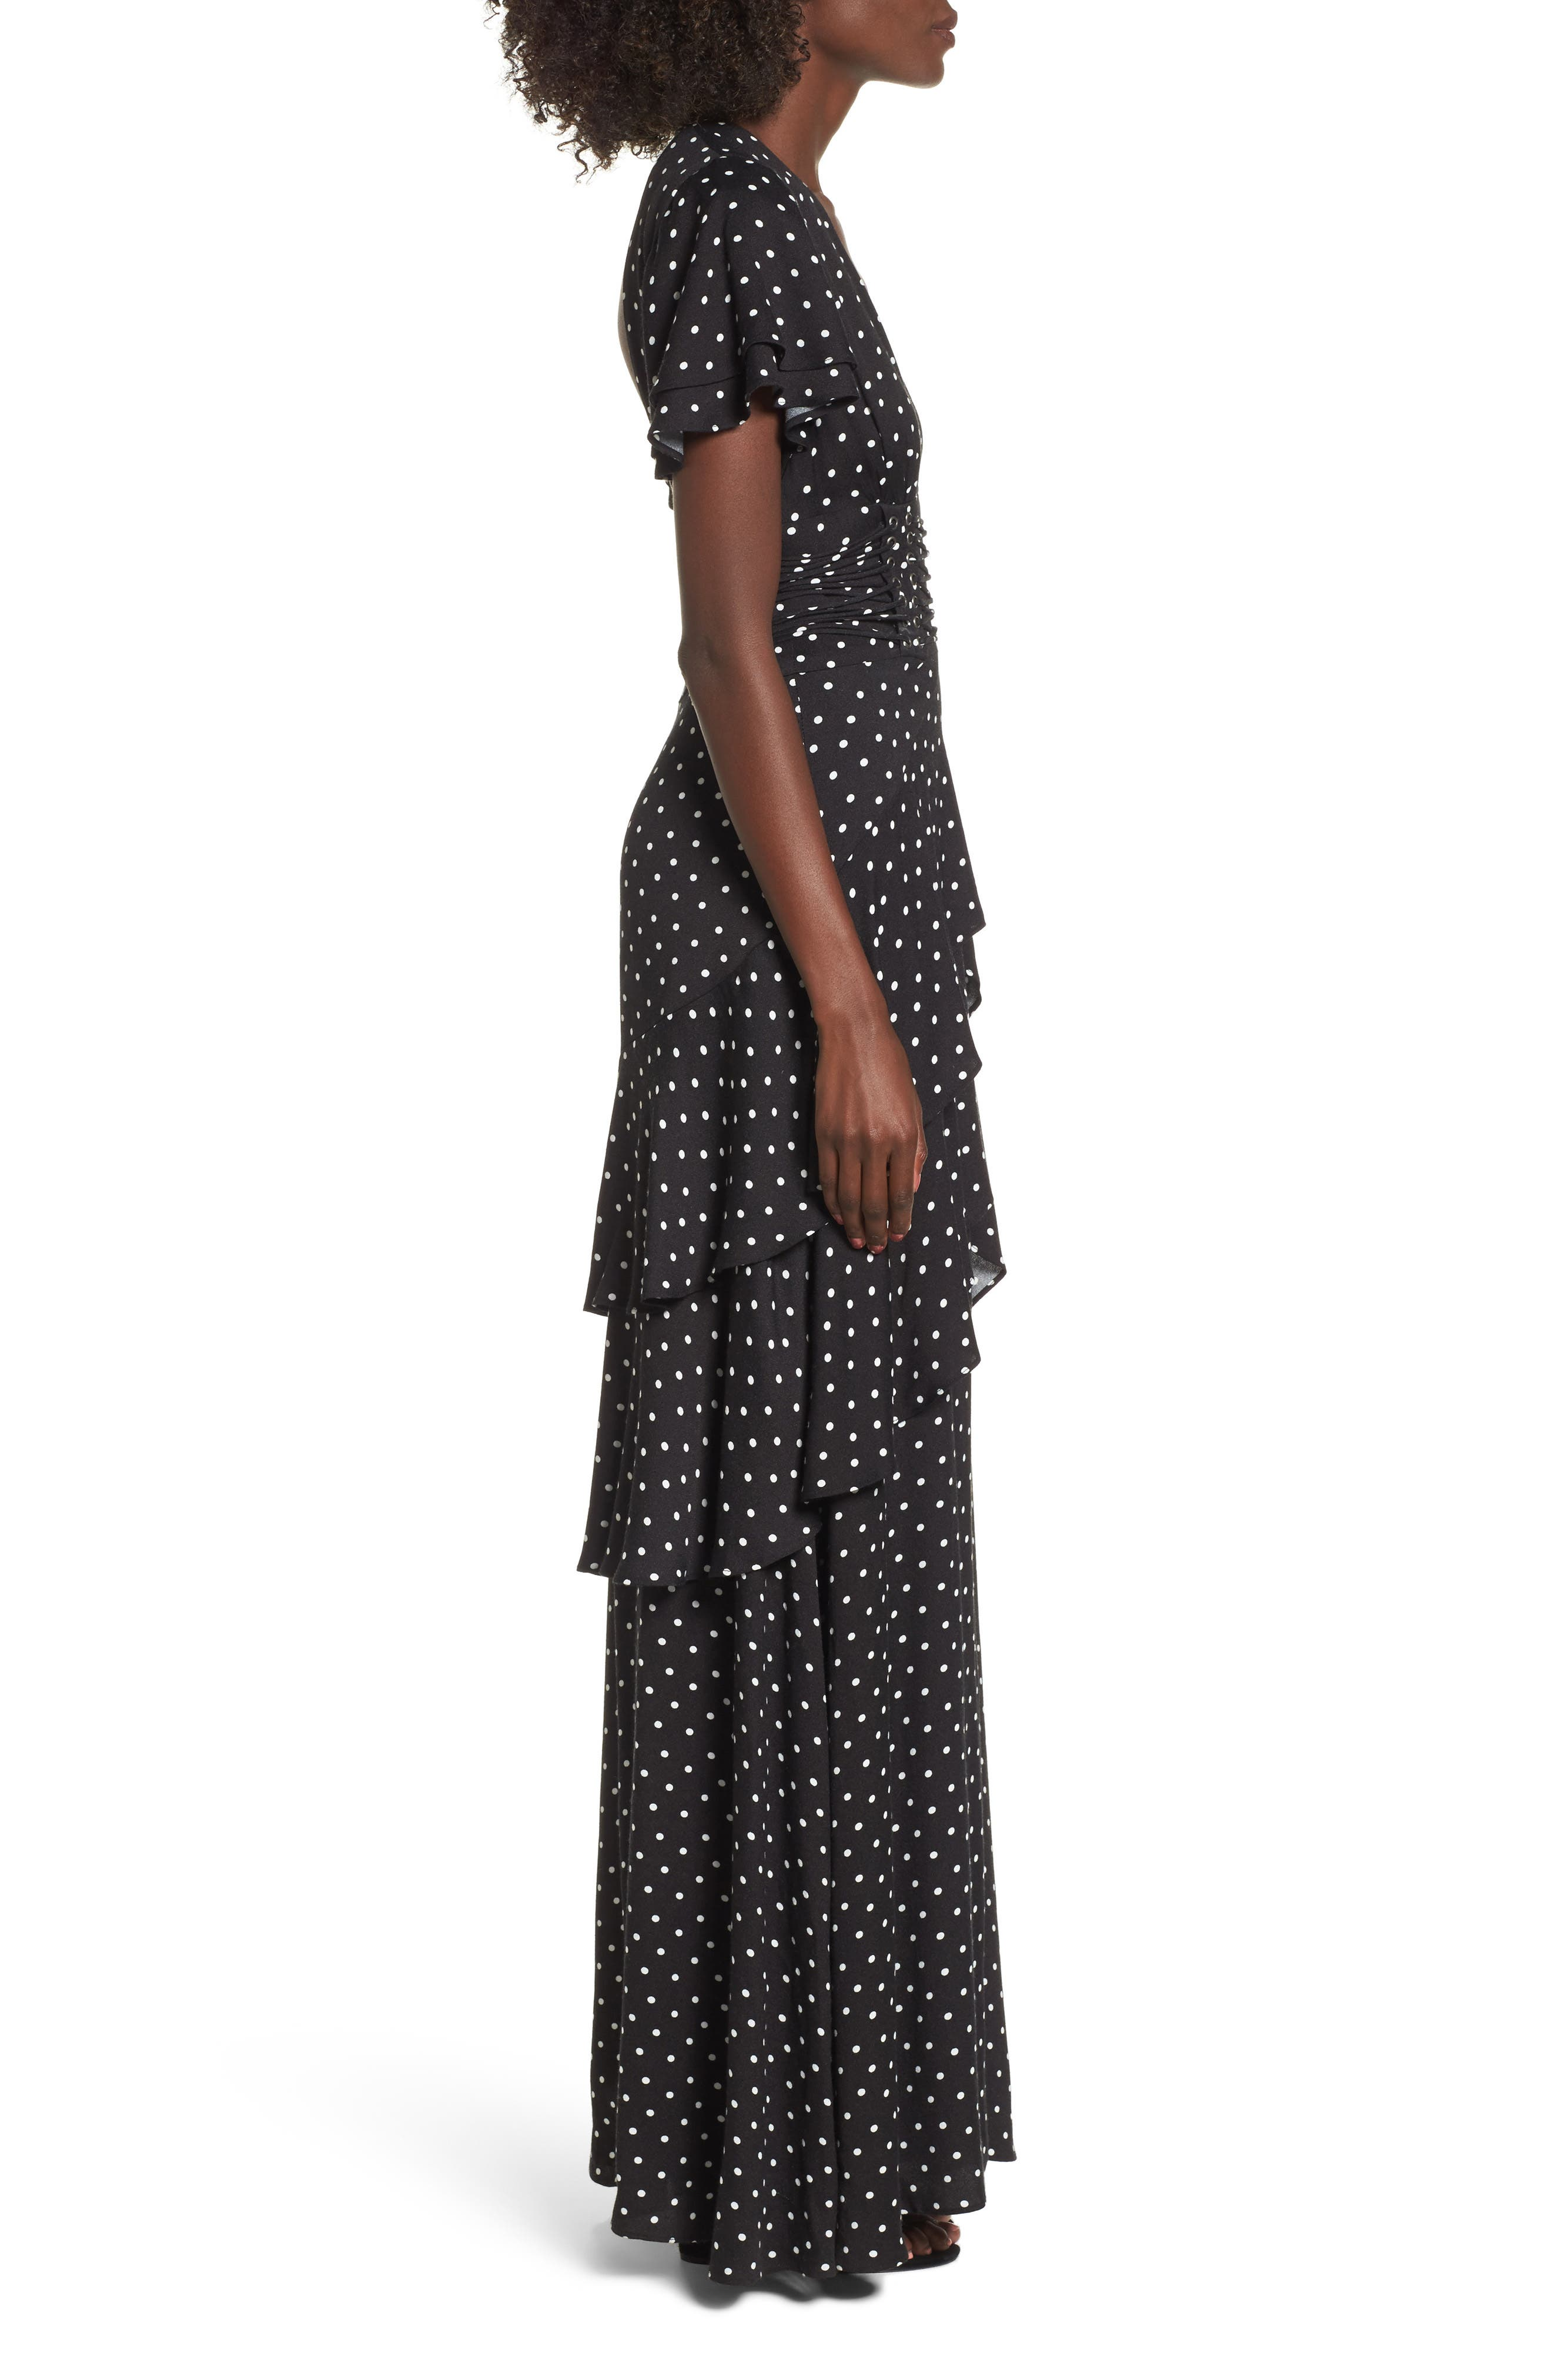 Micah Corset Maxi Dress,                             Alternate thumbnail 3, color,                             Noir Polka Dot